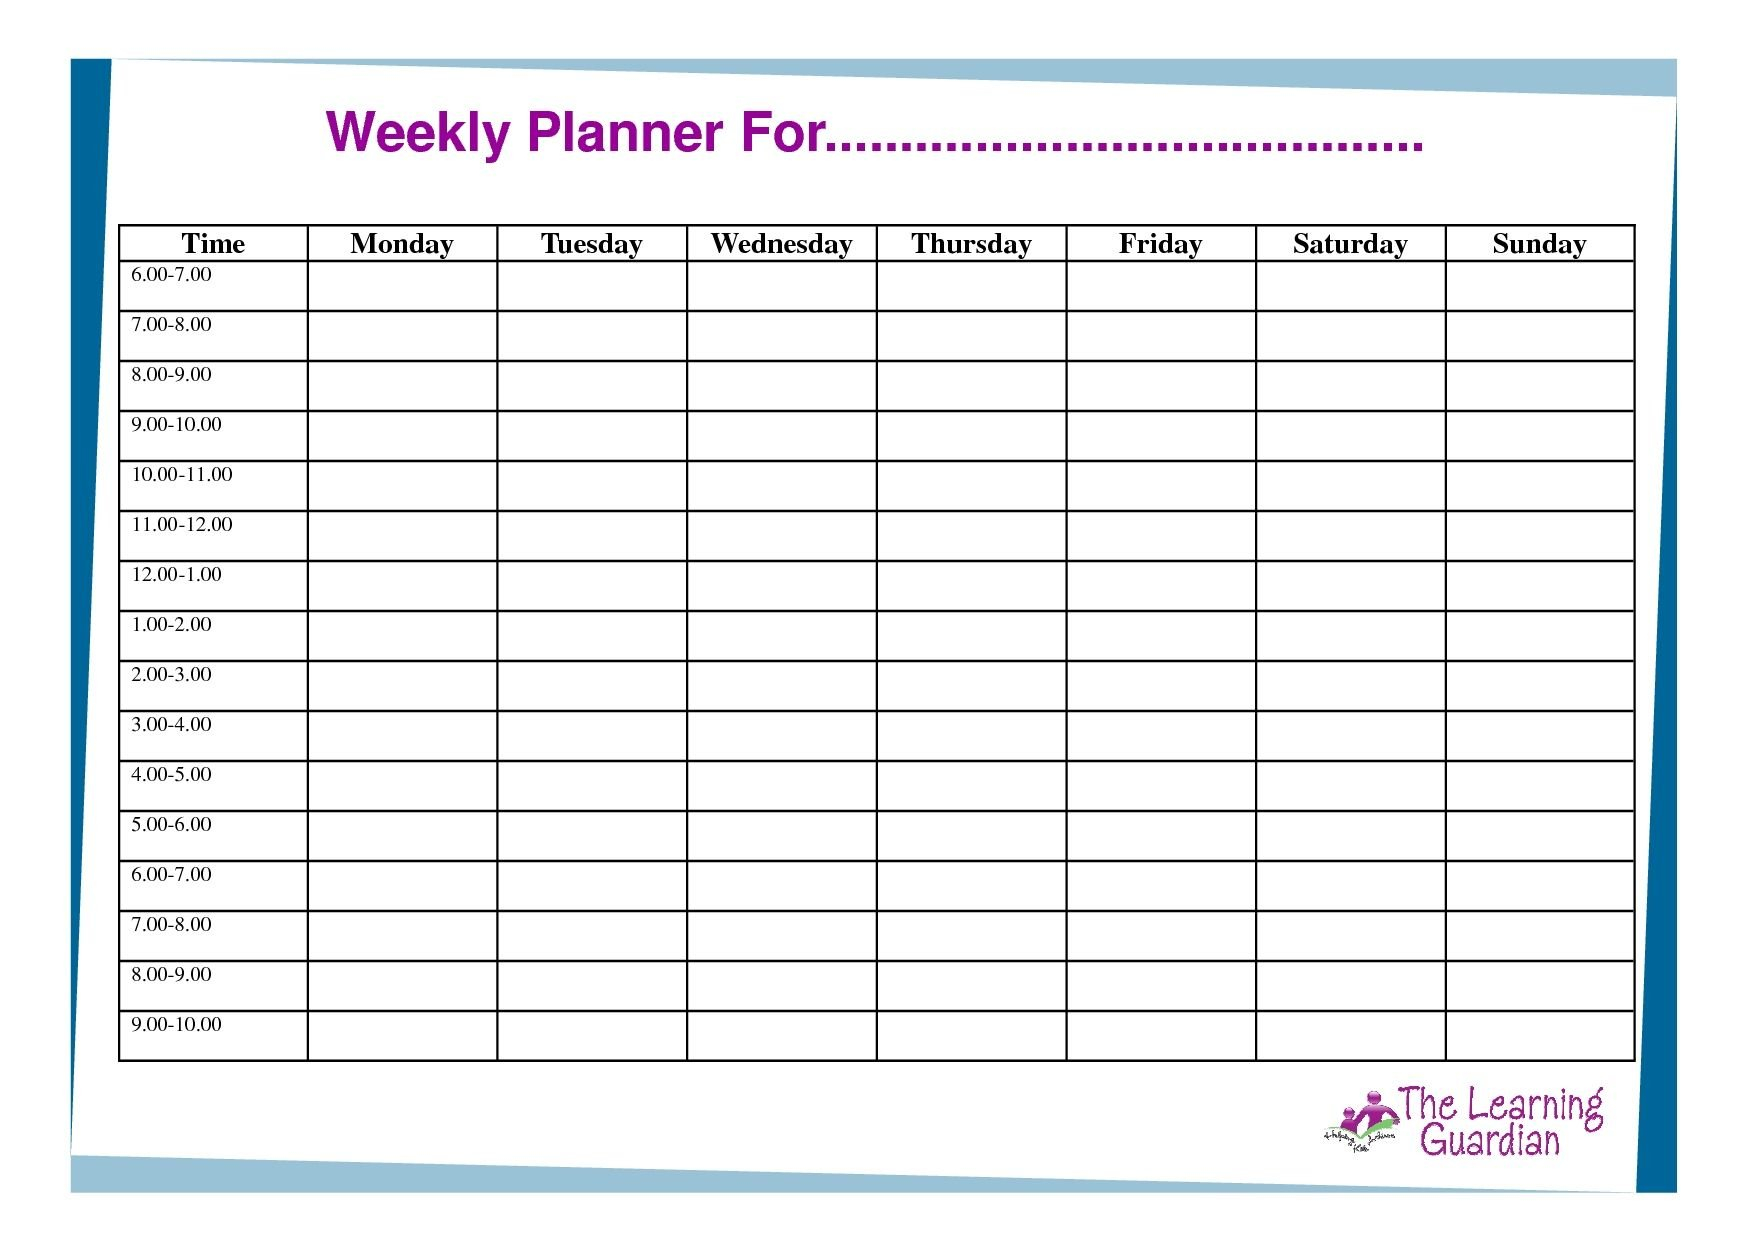 Free Printable Weekly Calendar Templates Weekly Planner Two Week Schedule Pdf